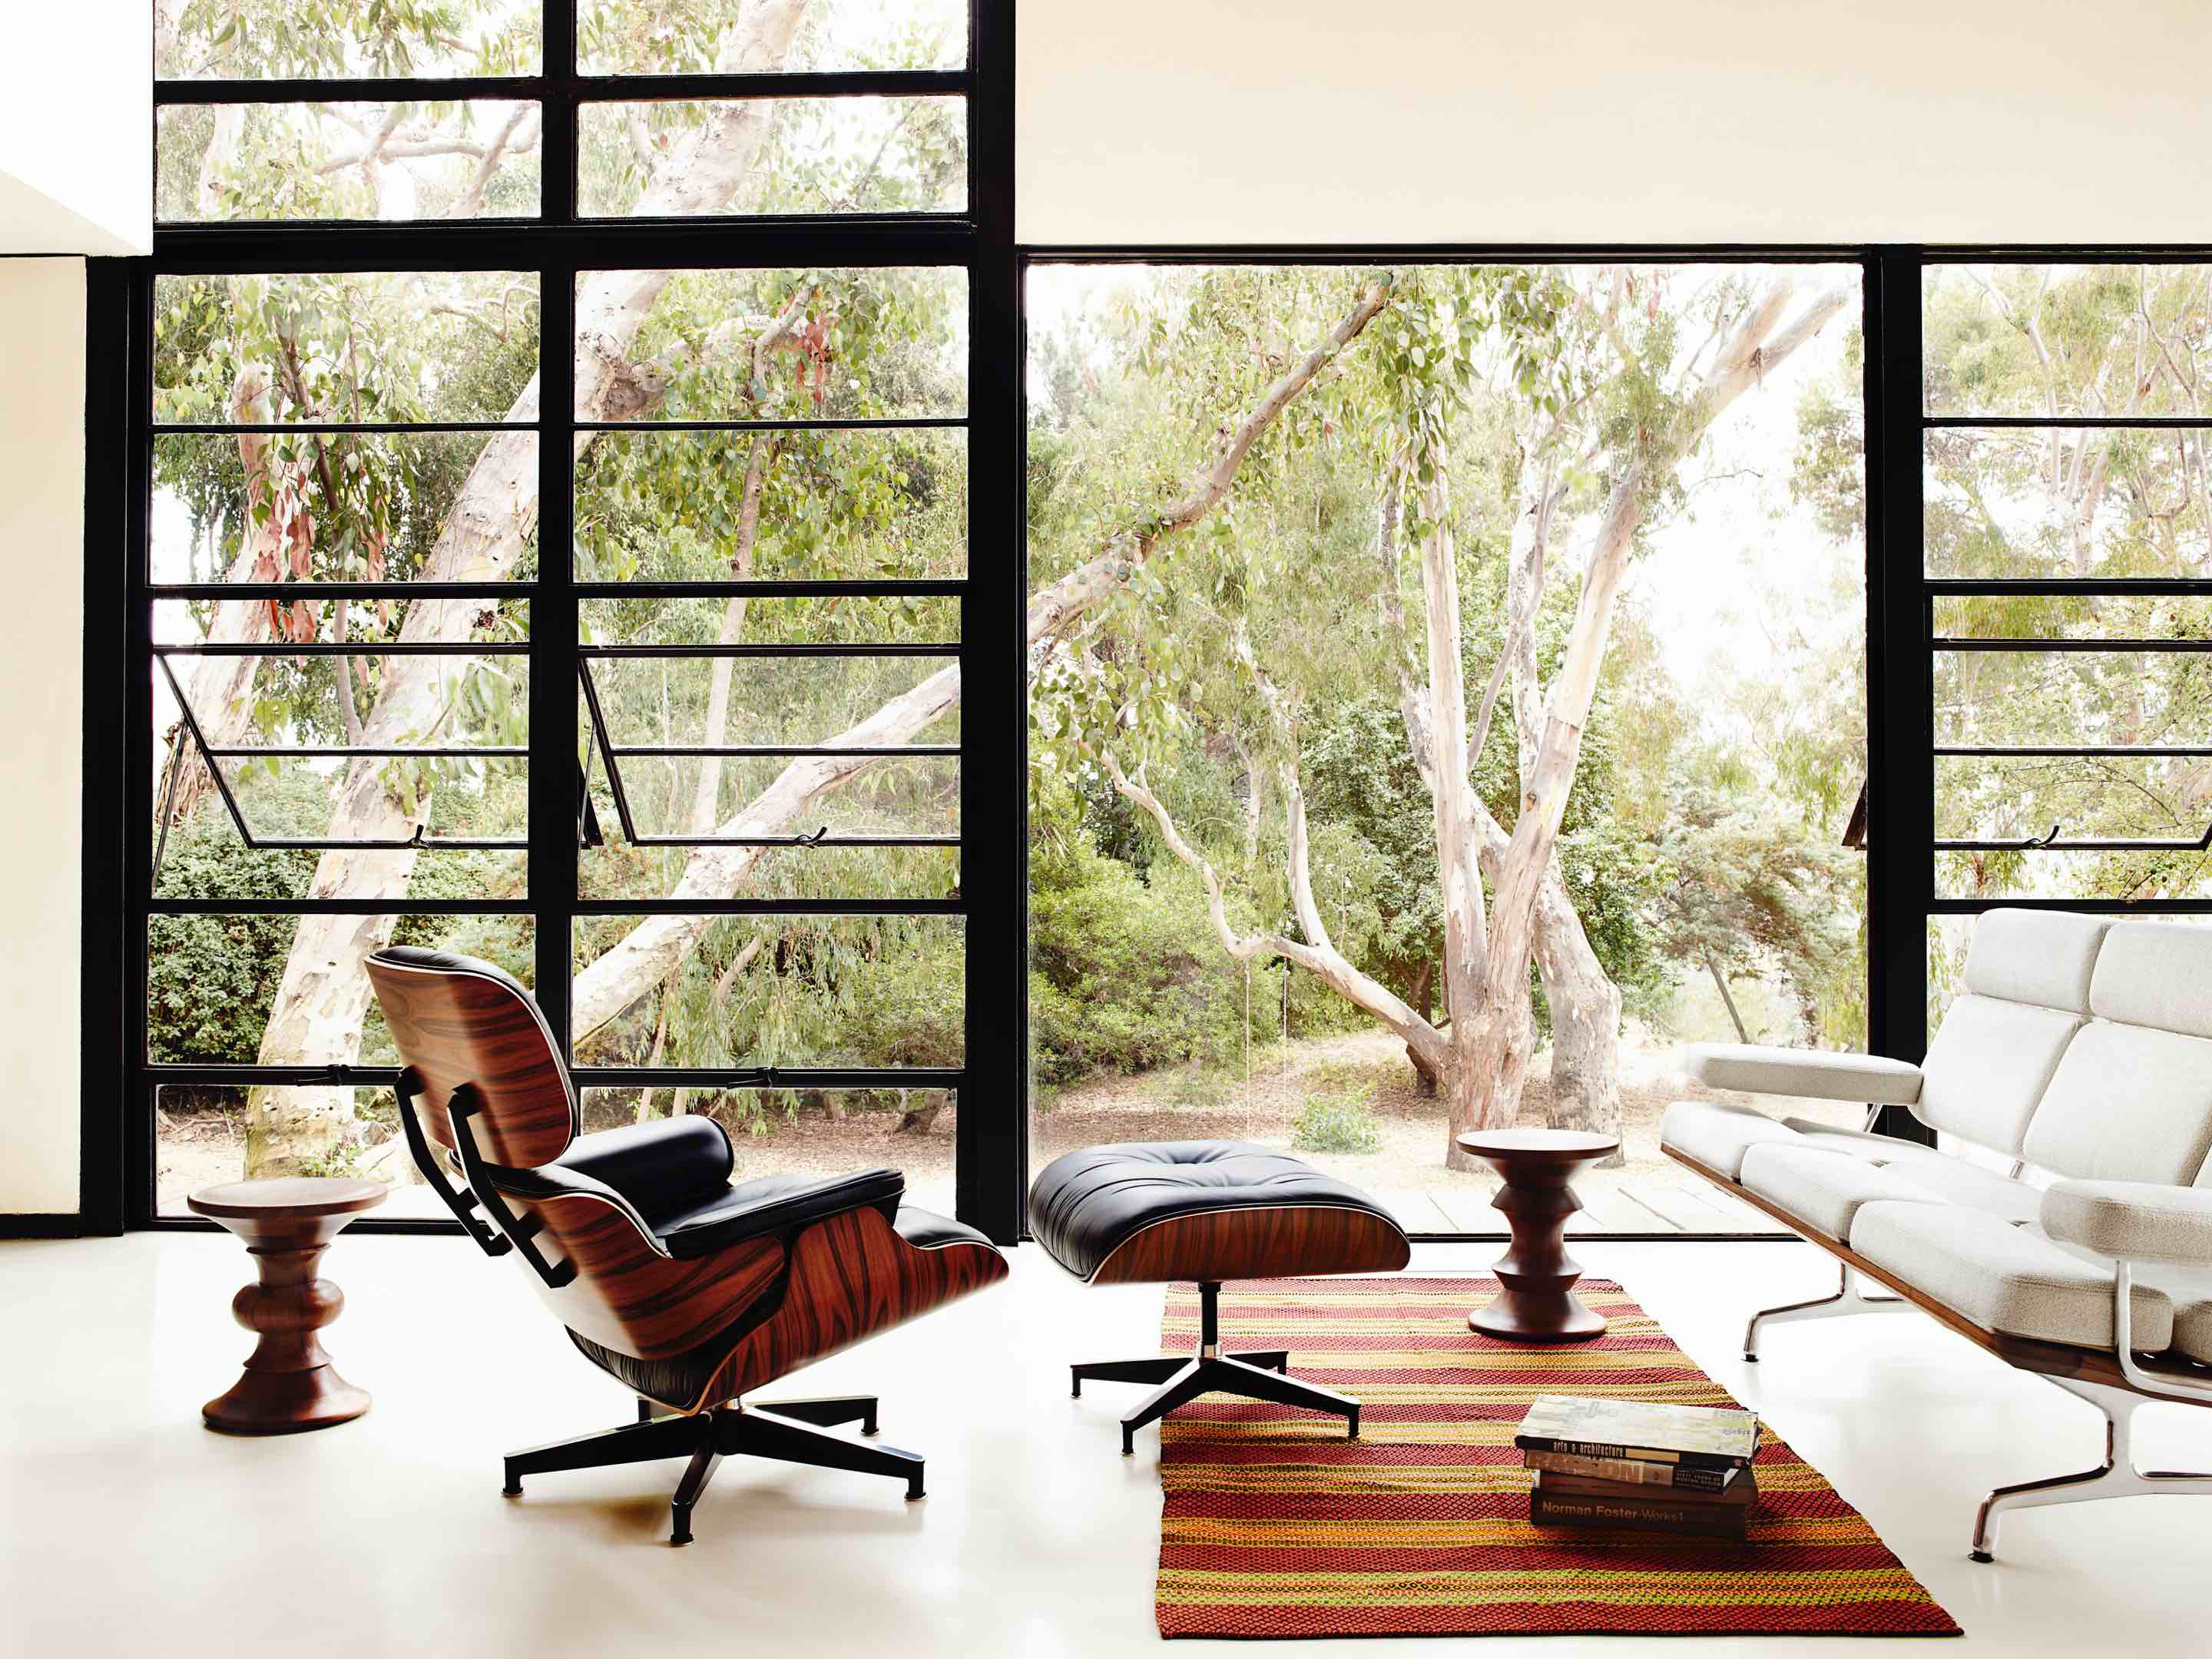 Charles Eames – Eames Lounge Chair and Ottoman